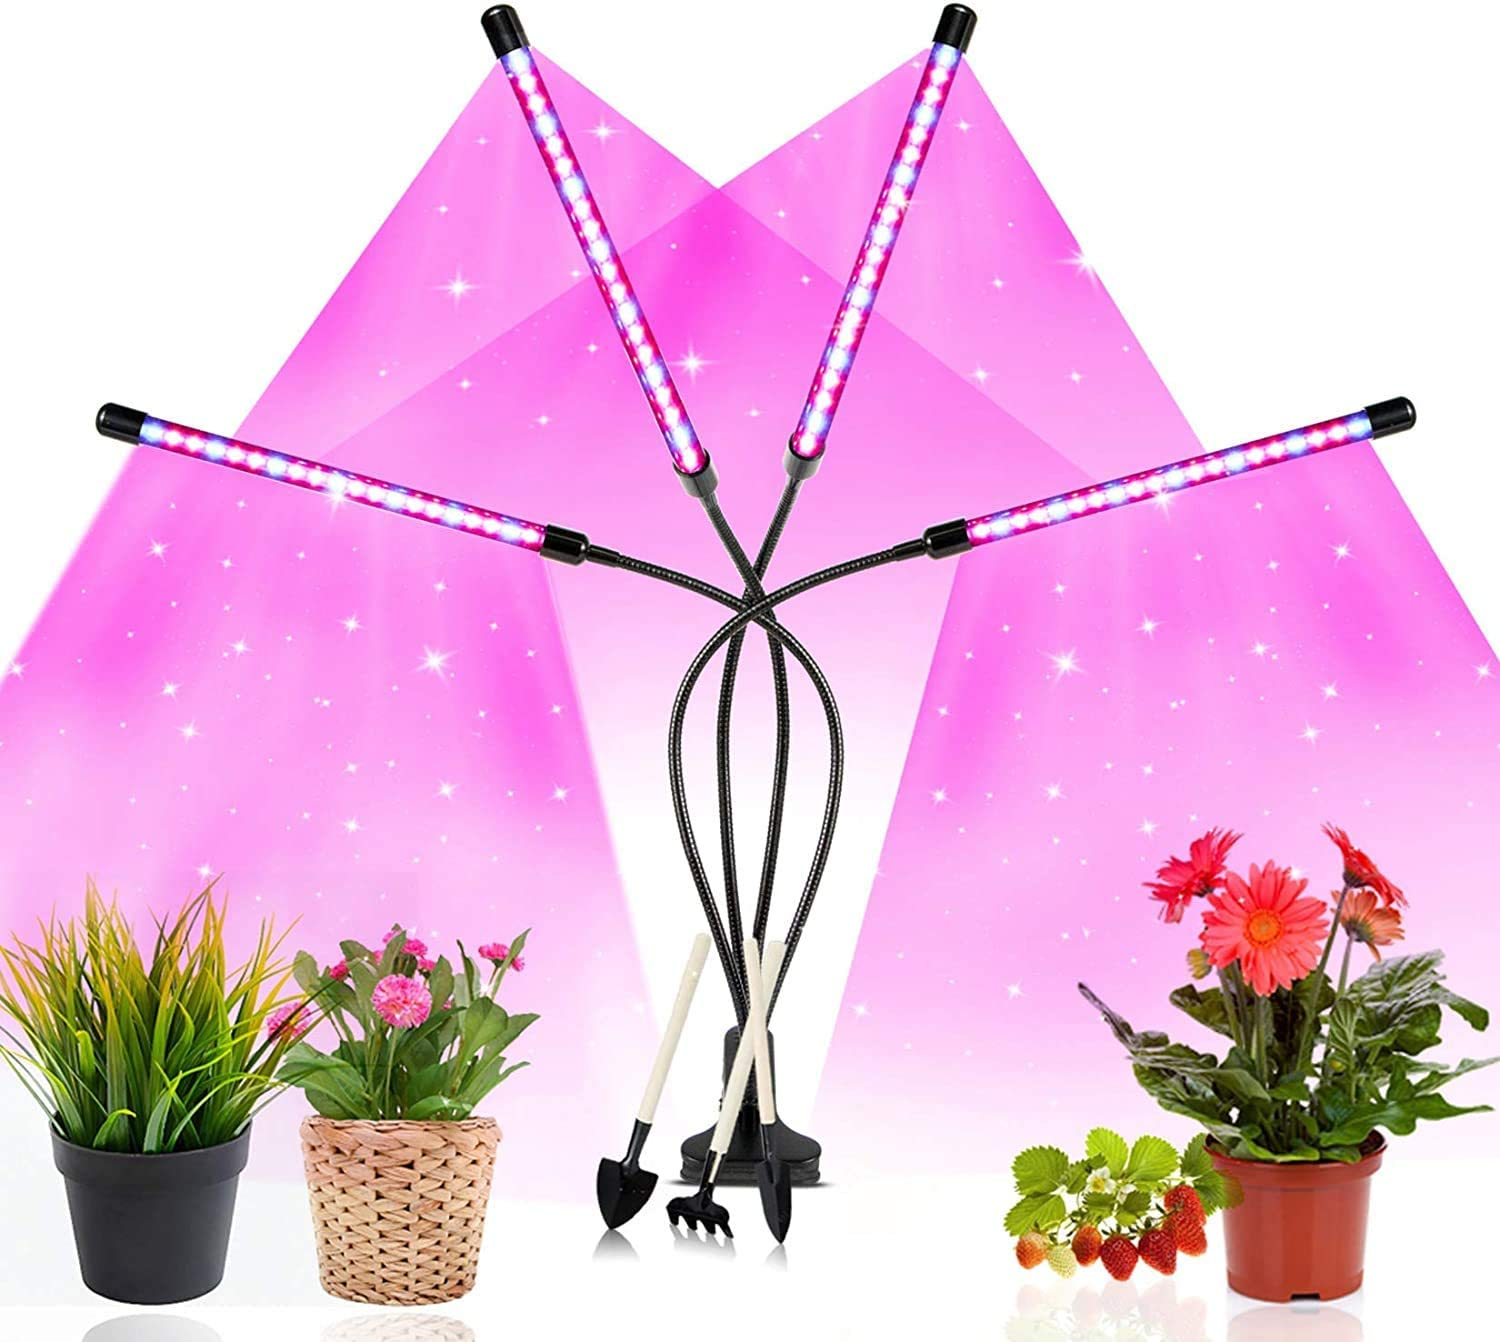 LED Grow Lamp for Indoor Plants,80W Full Spectrum & 10 Dimmable Brightness with 80LED Led Grow Light, 3 Switch Modes & 3 Auto Timer for Seeding Flowering Fruiting Succulent or Live Plants